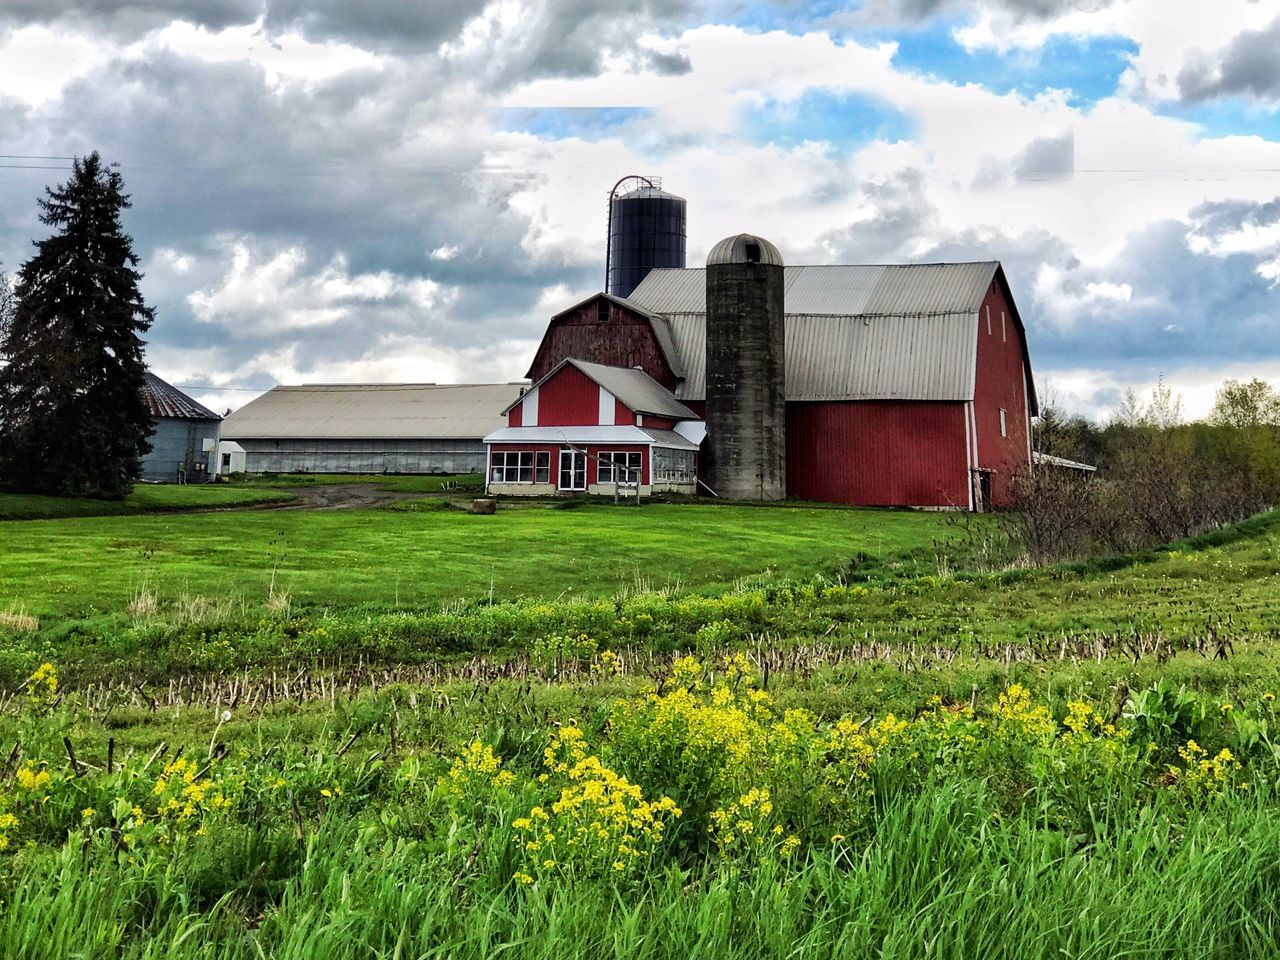 Built Structure Architecture Building Exterior Field Sky Cloud - Sky House Grass Day Rural Scene Barn No People Outdoors Country House Landscape Agriculture Growth Nature Plant Flower EyeEmNewHere BYOPaper! Barn Farm